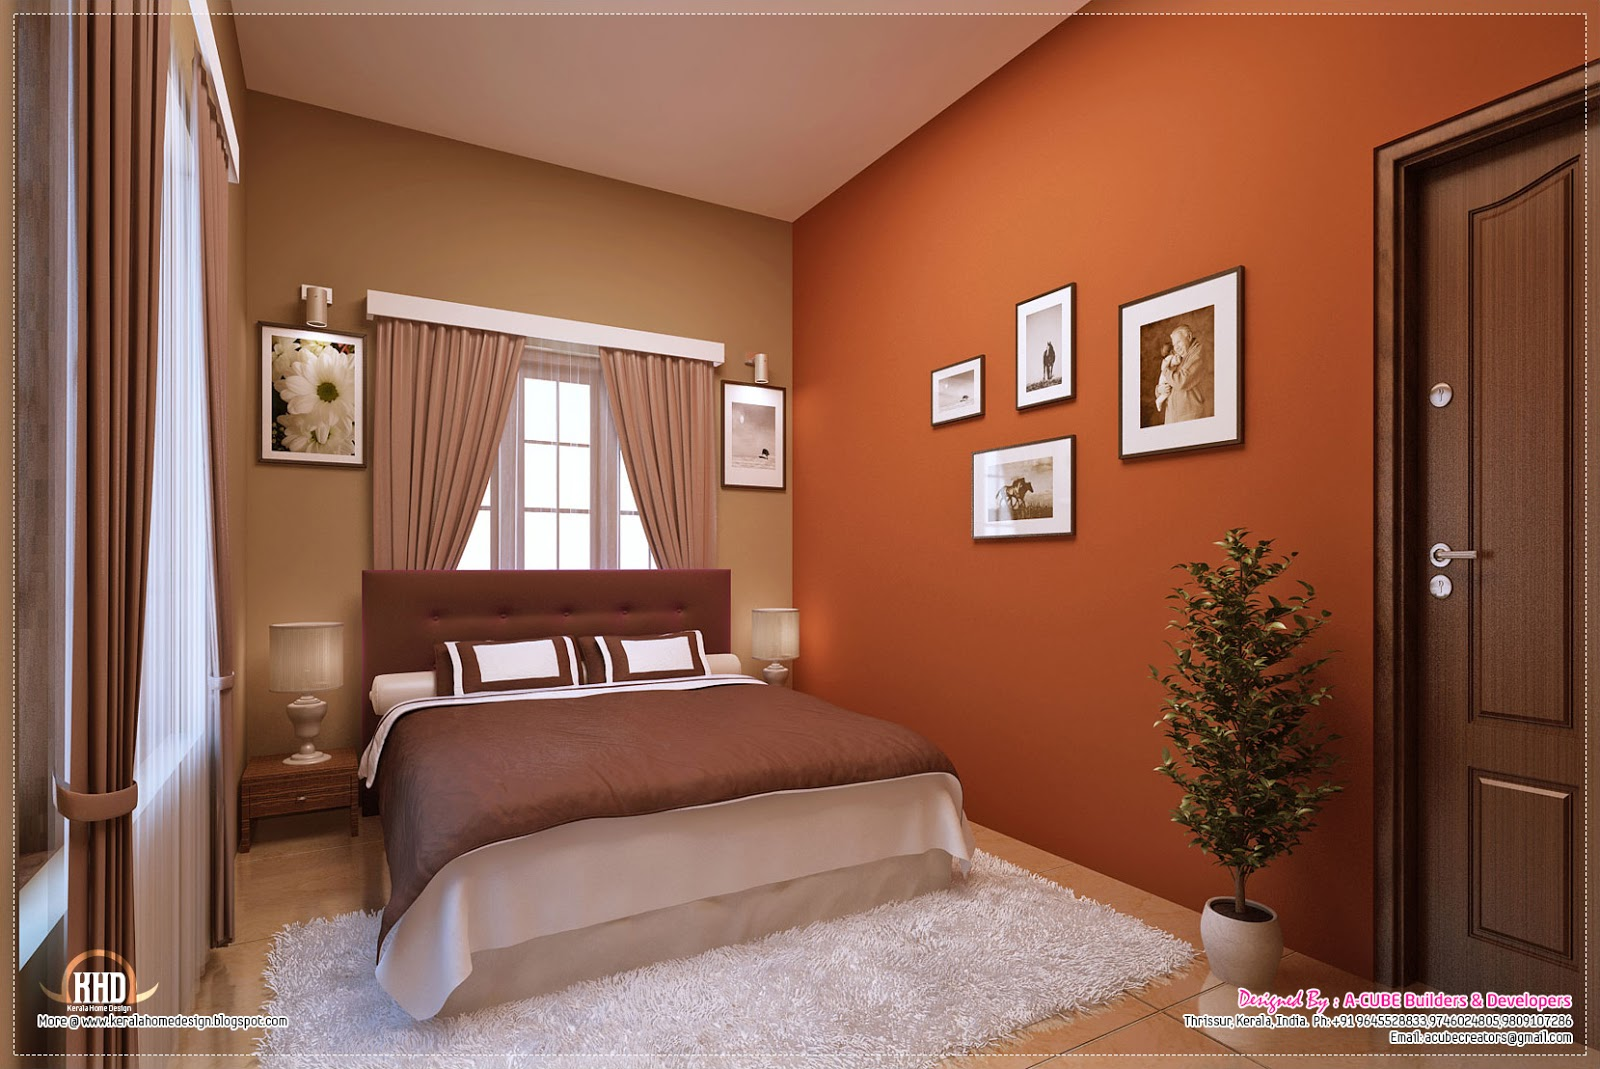 Awesome interior decoration ideas home kerala plans for Beautiful home decor